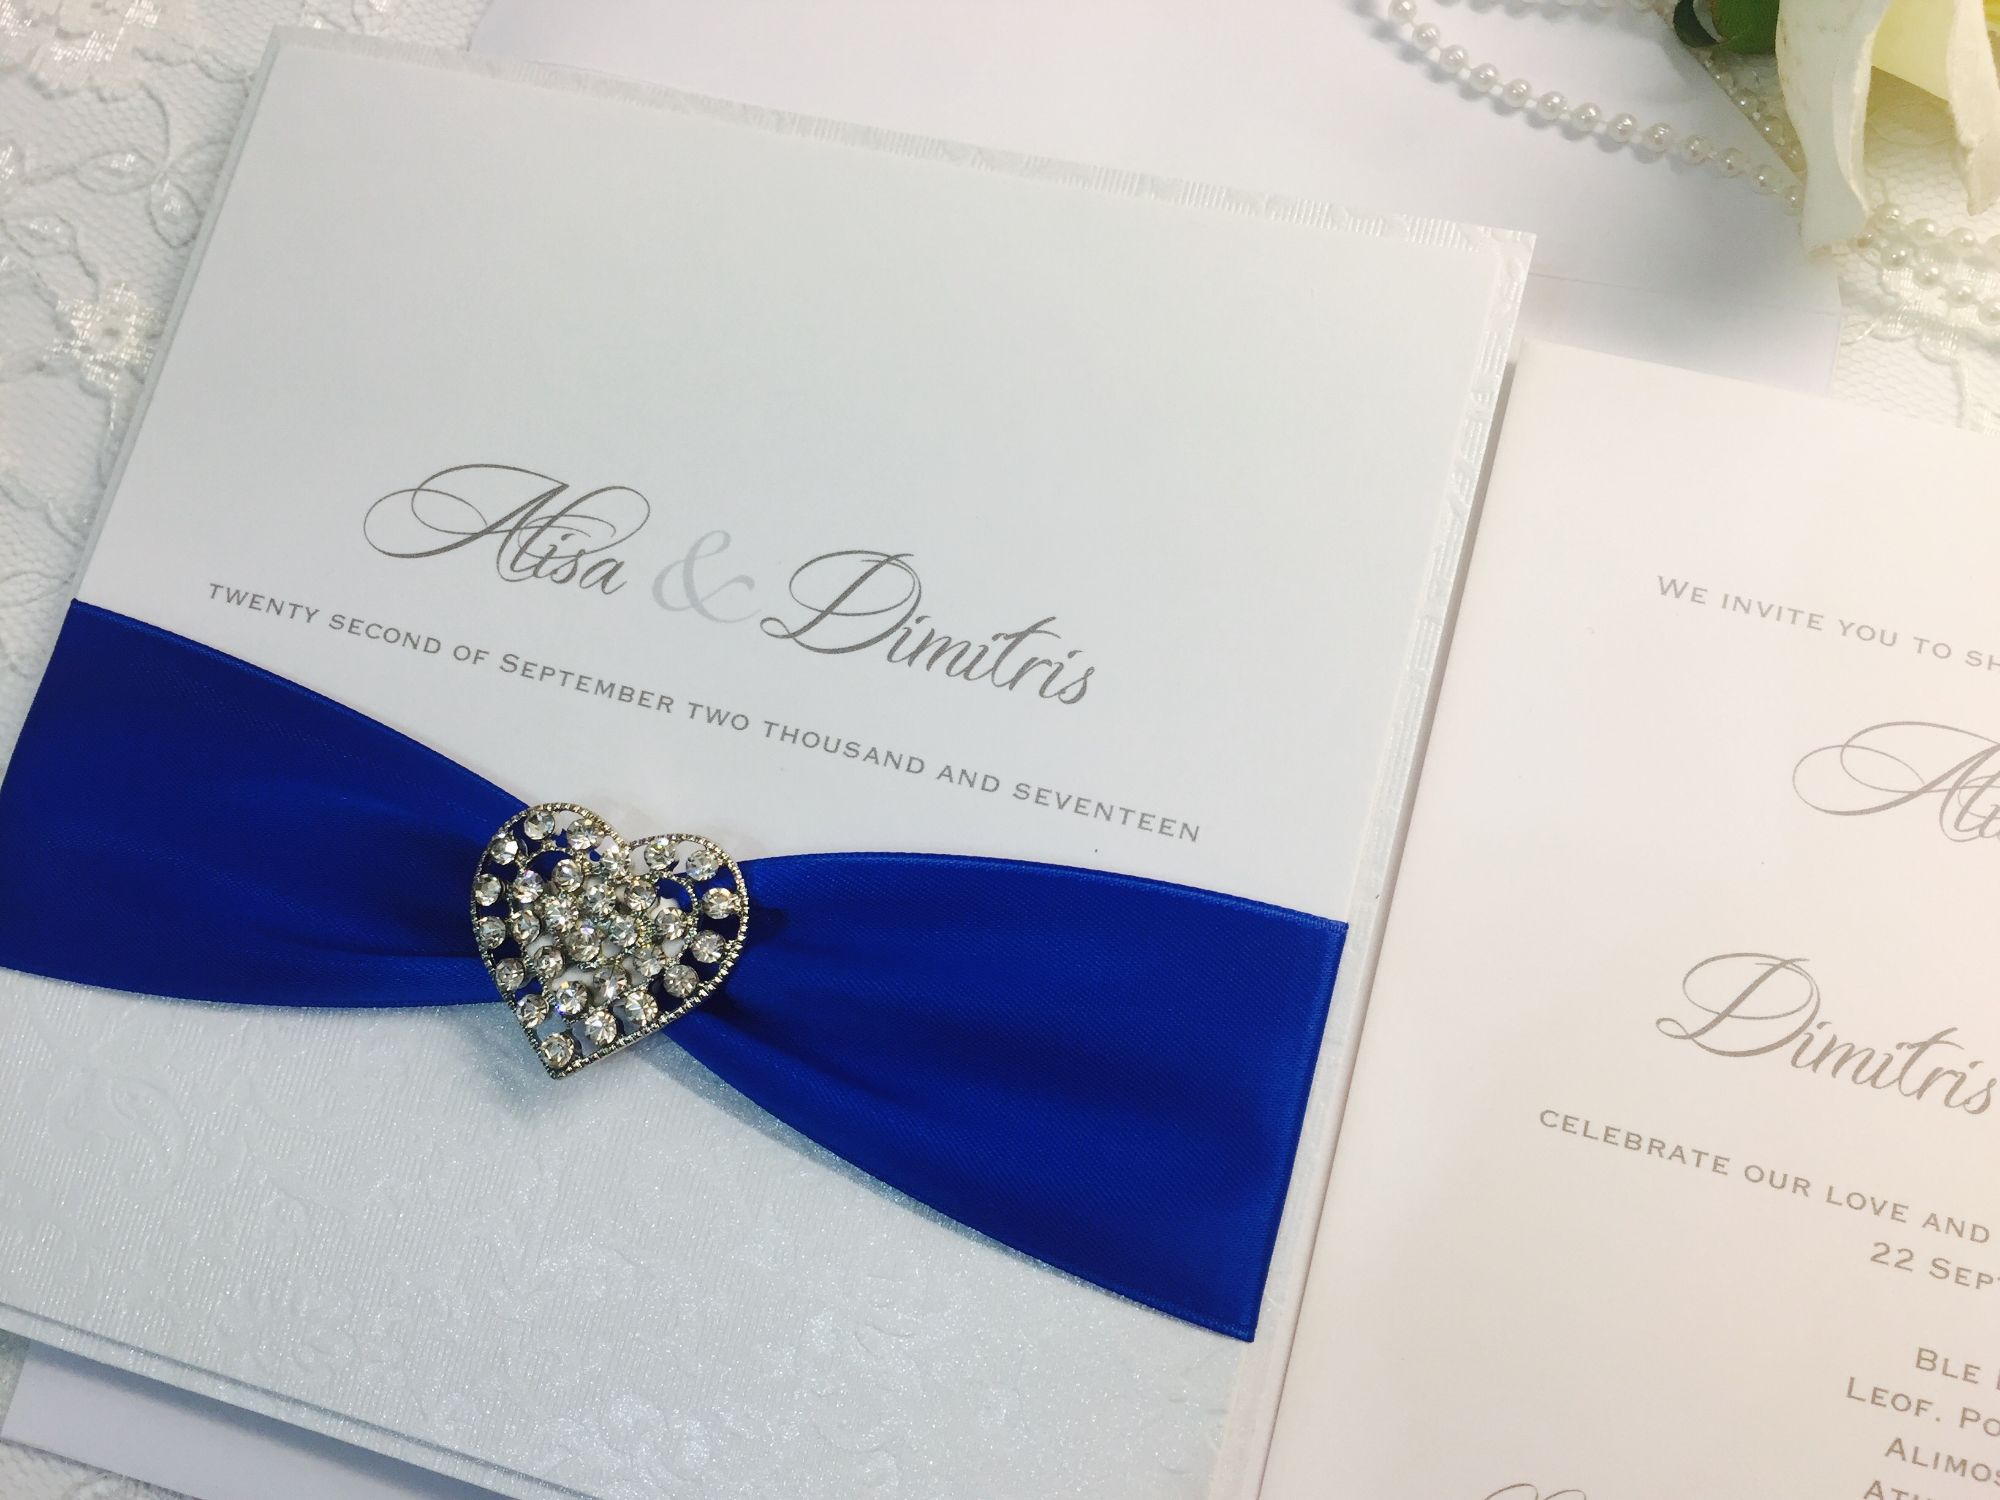 invitation with royal blue ribbon and vintage heart shaped brooch encrusted with diamante